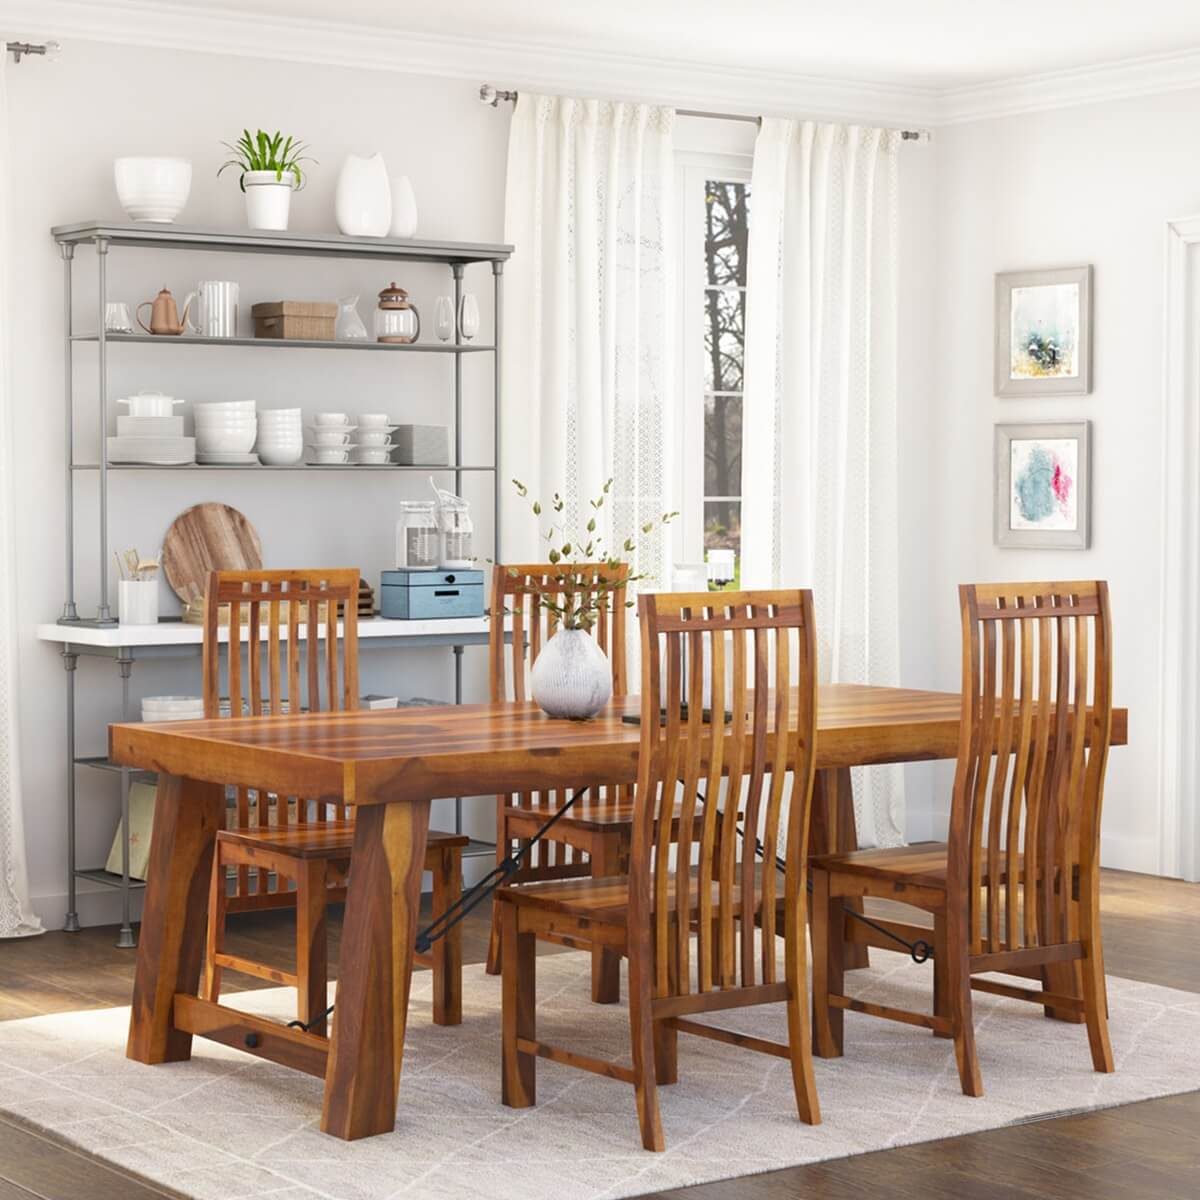 Merveilleux Lincoln 5pc Transitional Dining Room Table U0026 Chair Set. Hover To Zoom